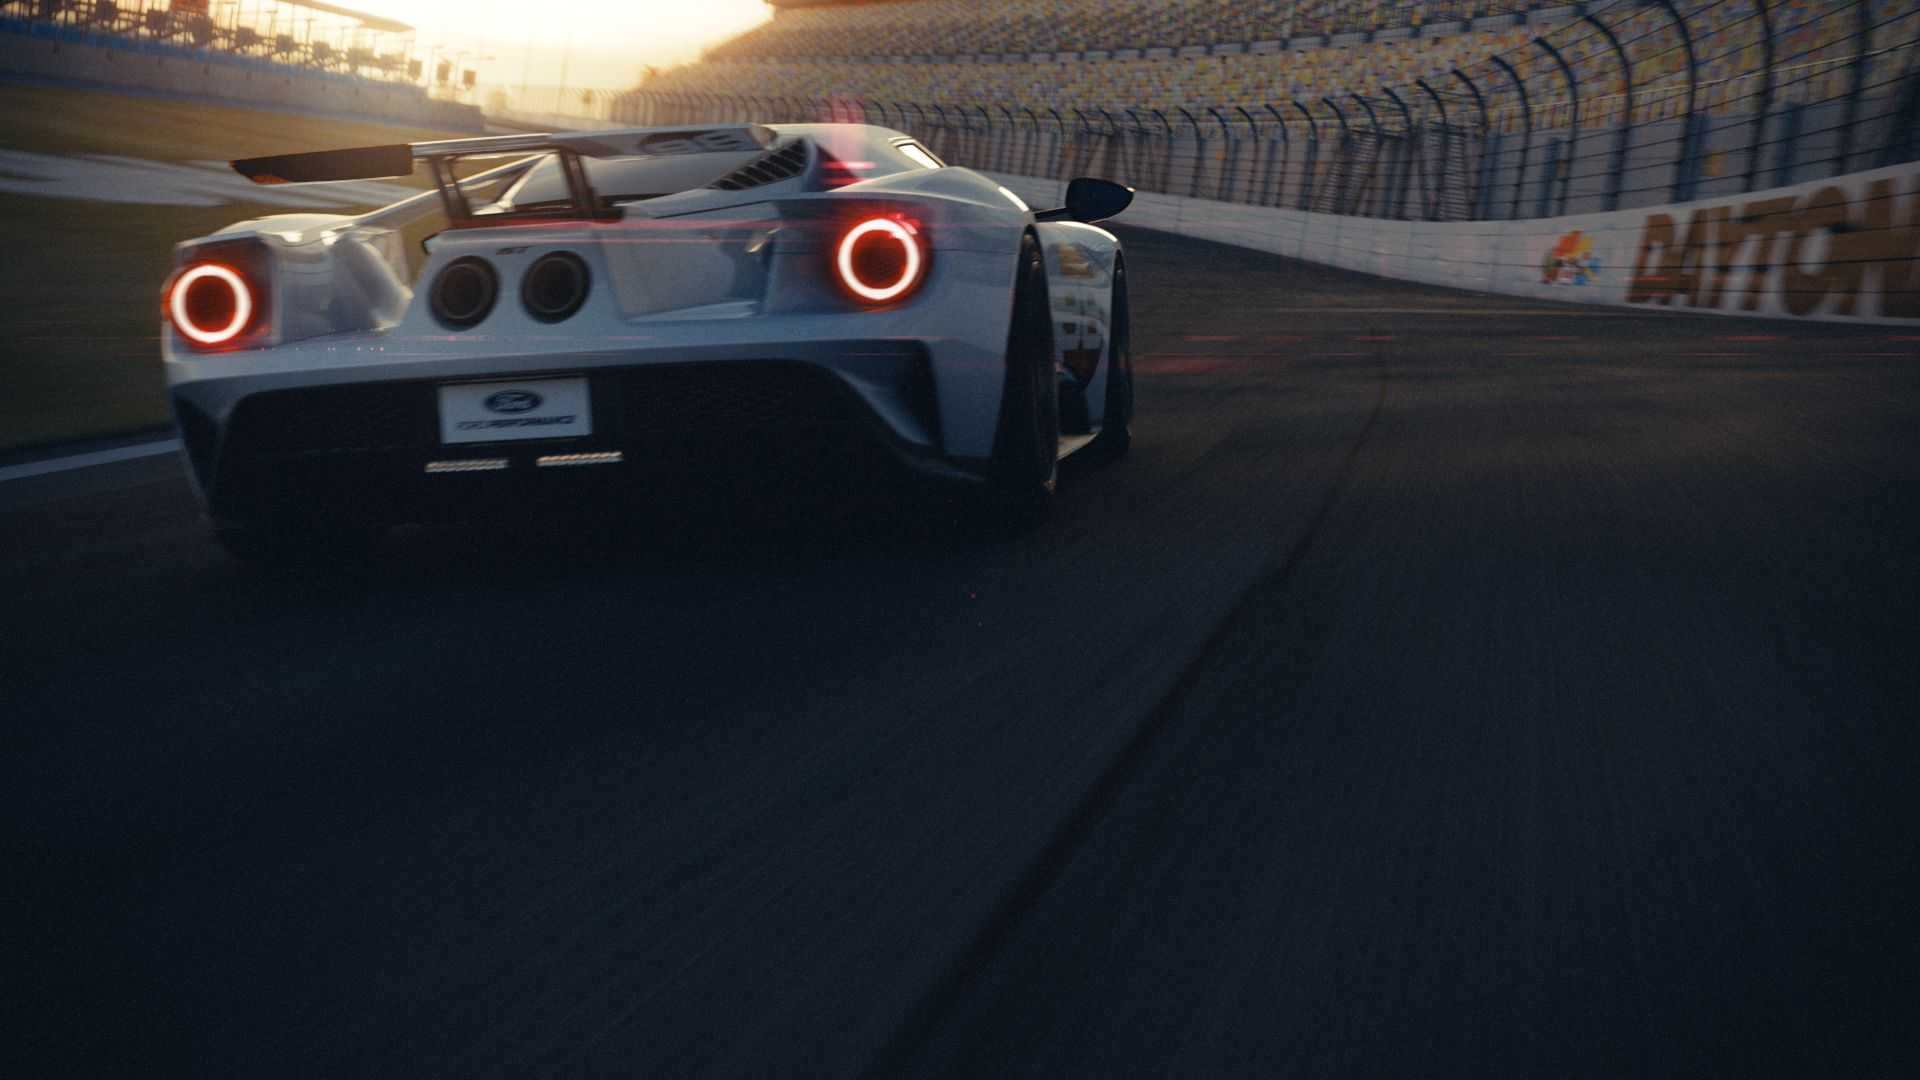 2021-ford-gt-heritage-edition-rear-race-track-shot.jpg